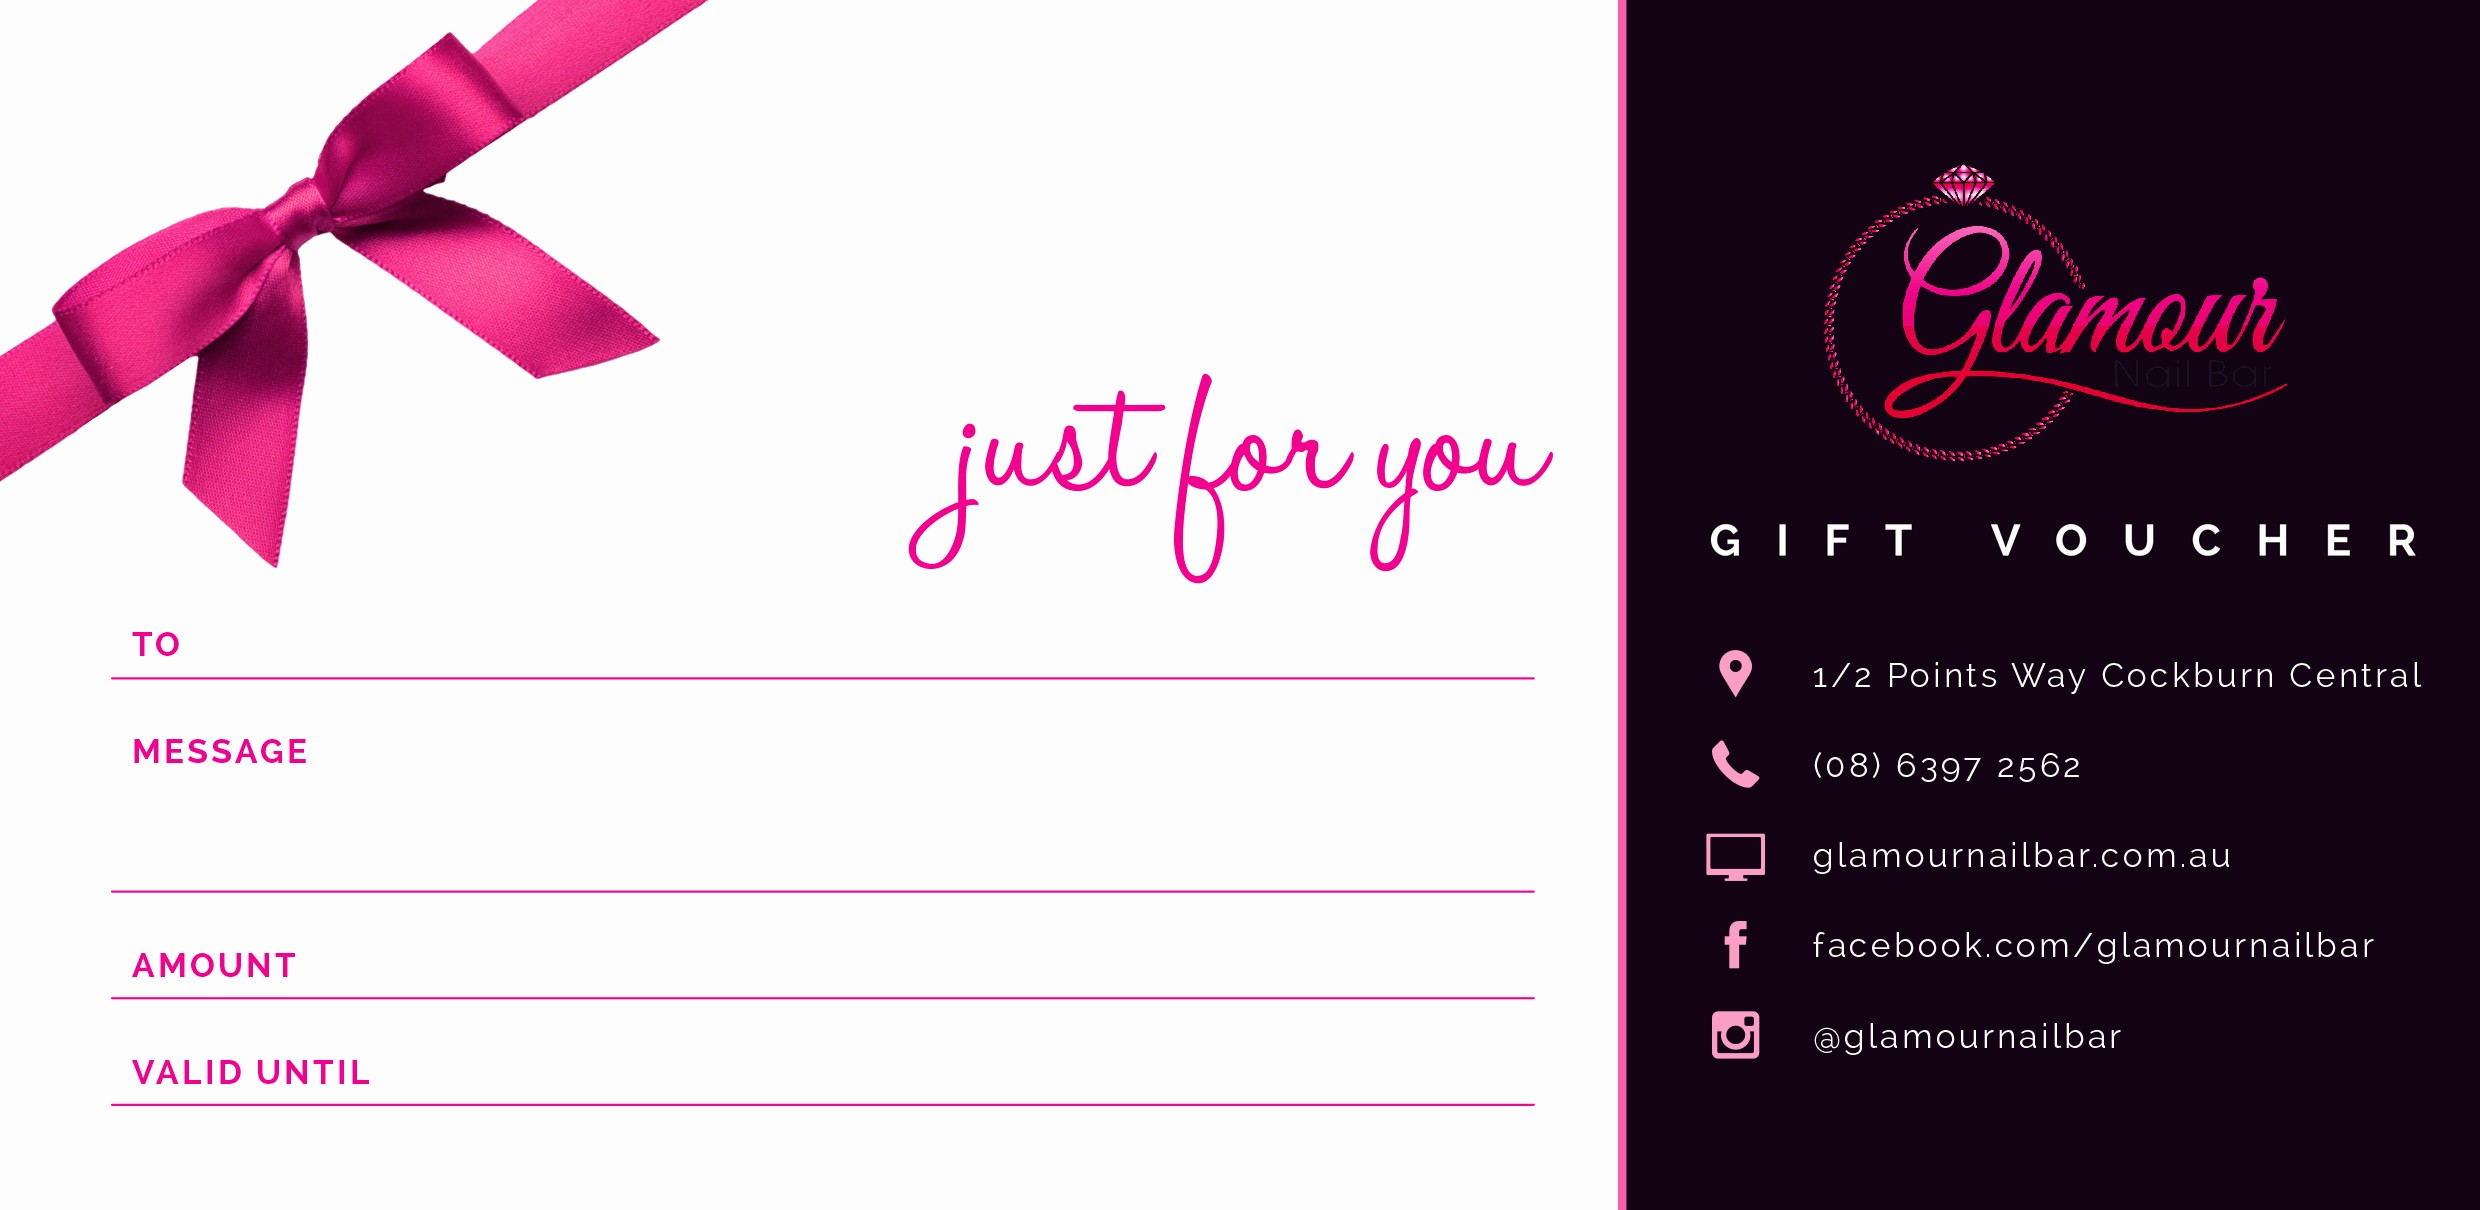 Homemade Gift Certificate Templates Free Best Of Homemade Gift Certificate